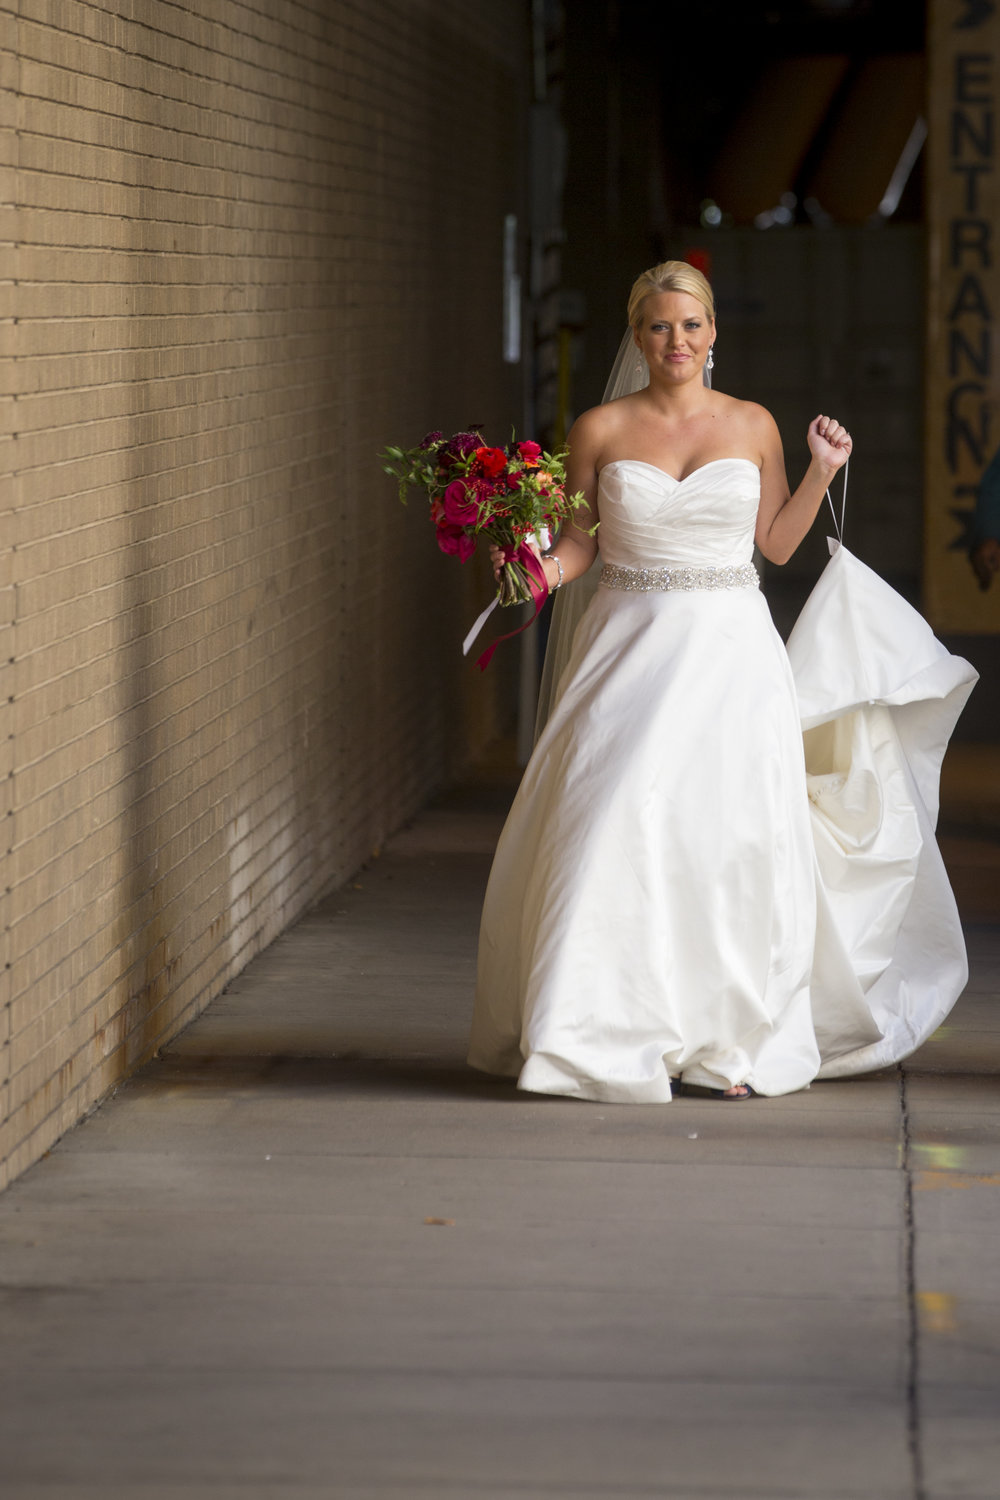 Emma Lea Floral- Denver Wedding- David Lynn Photography